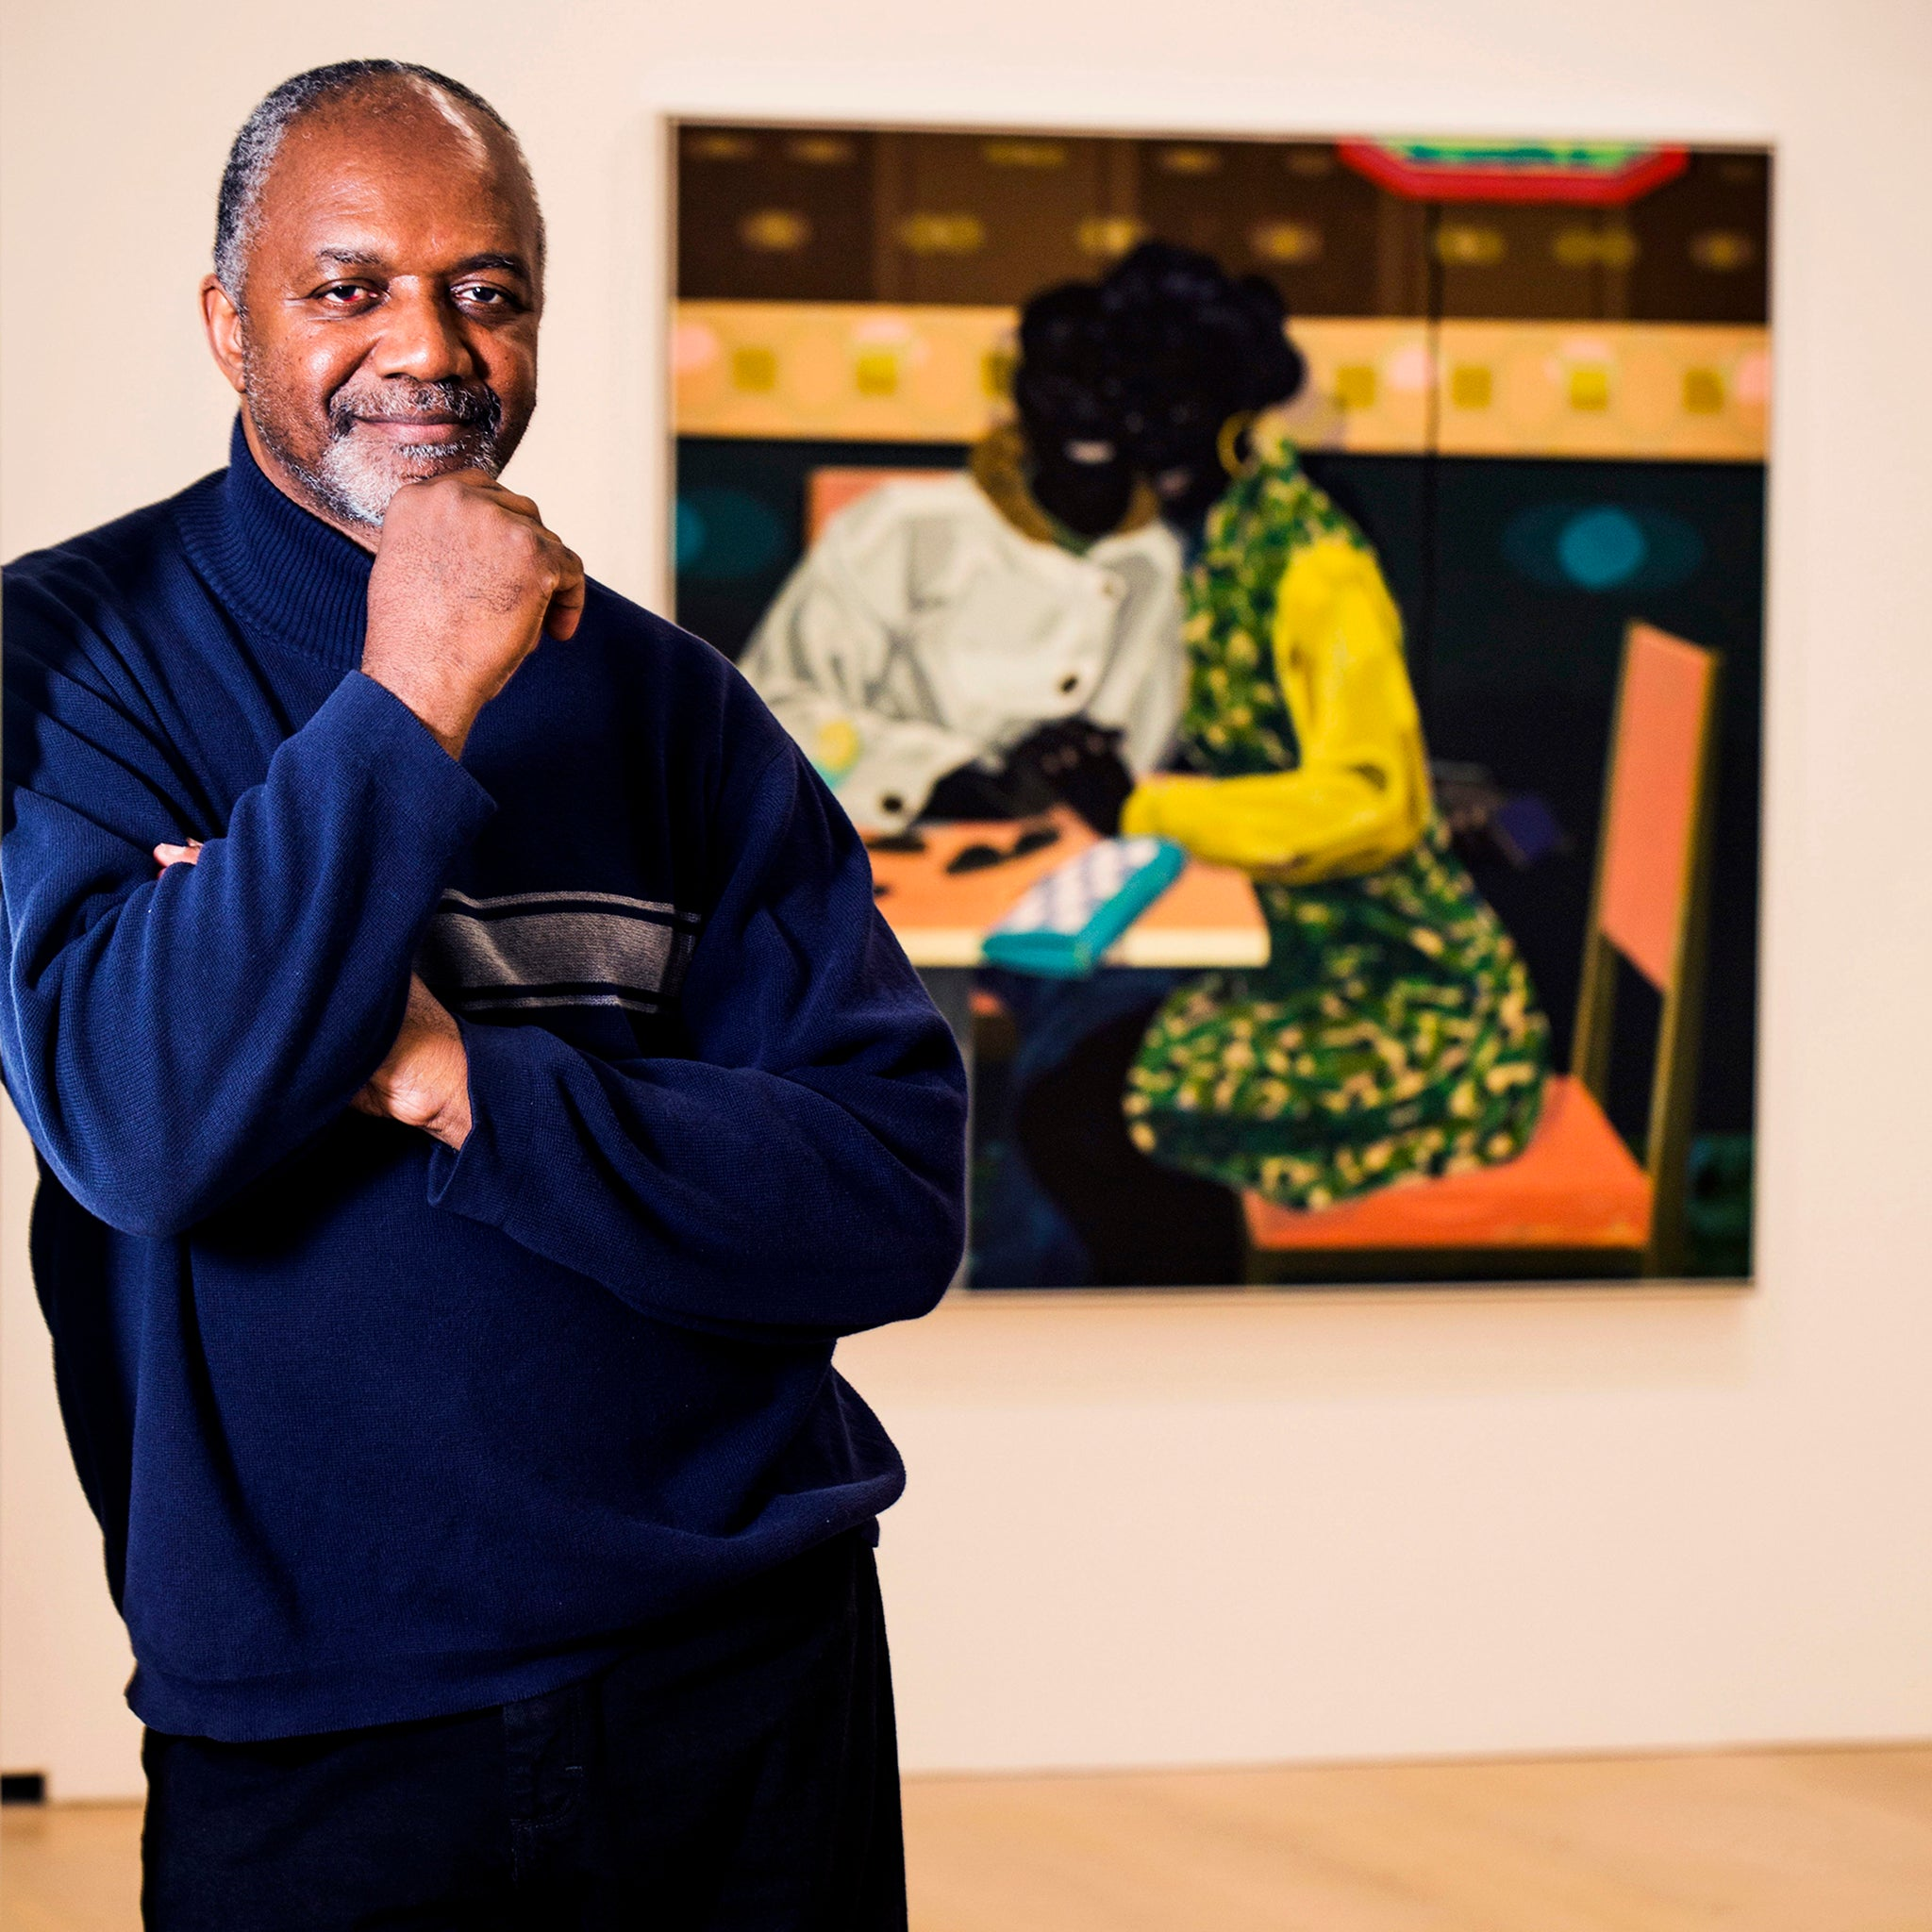 kerry james marshall email